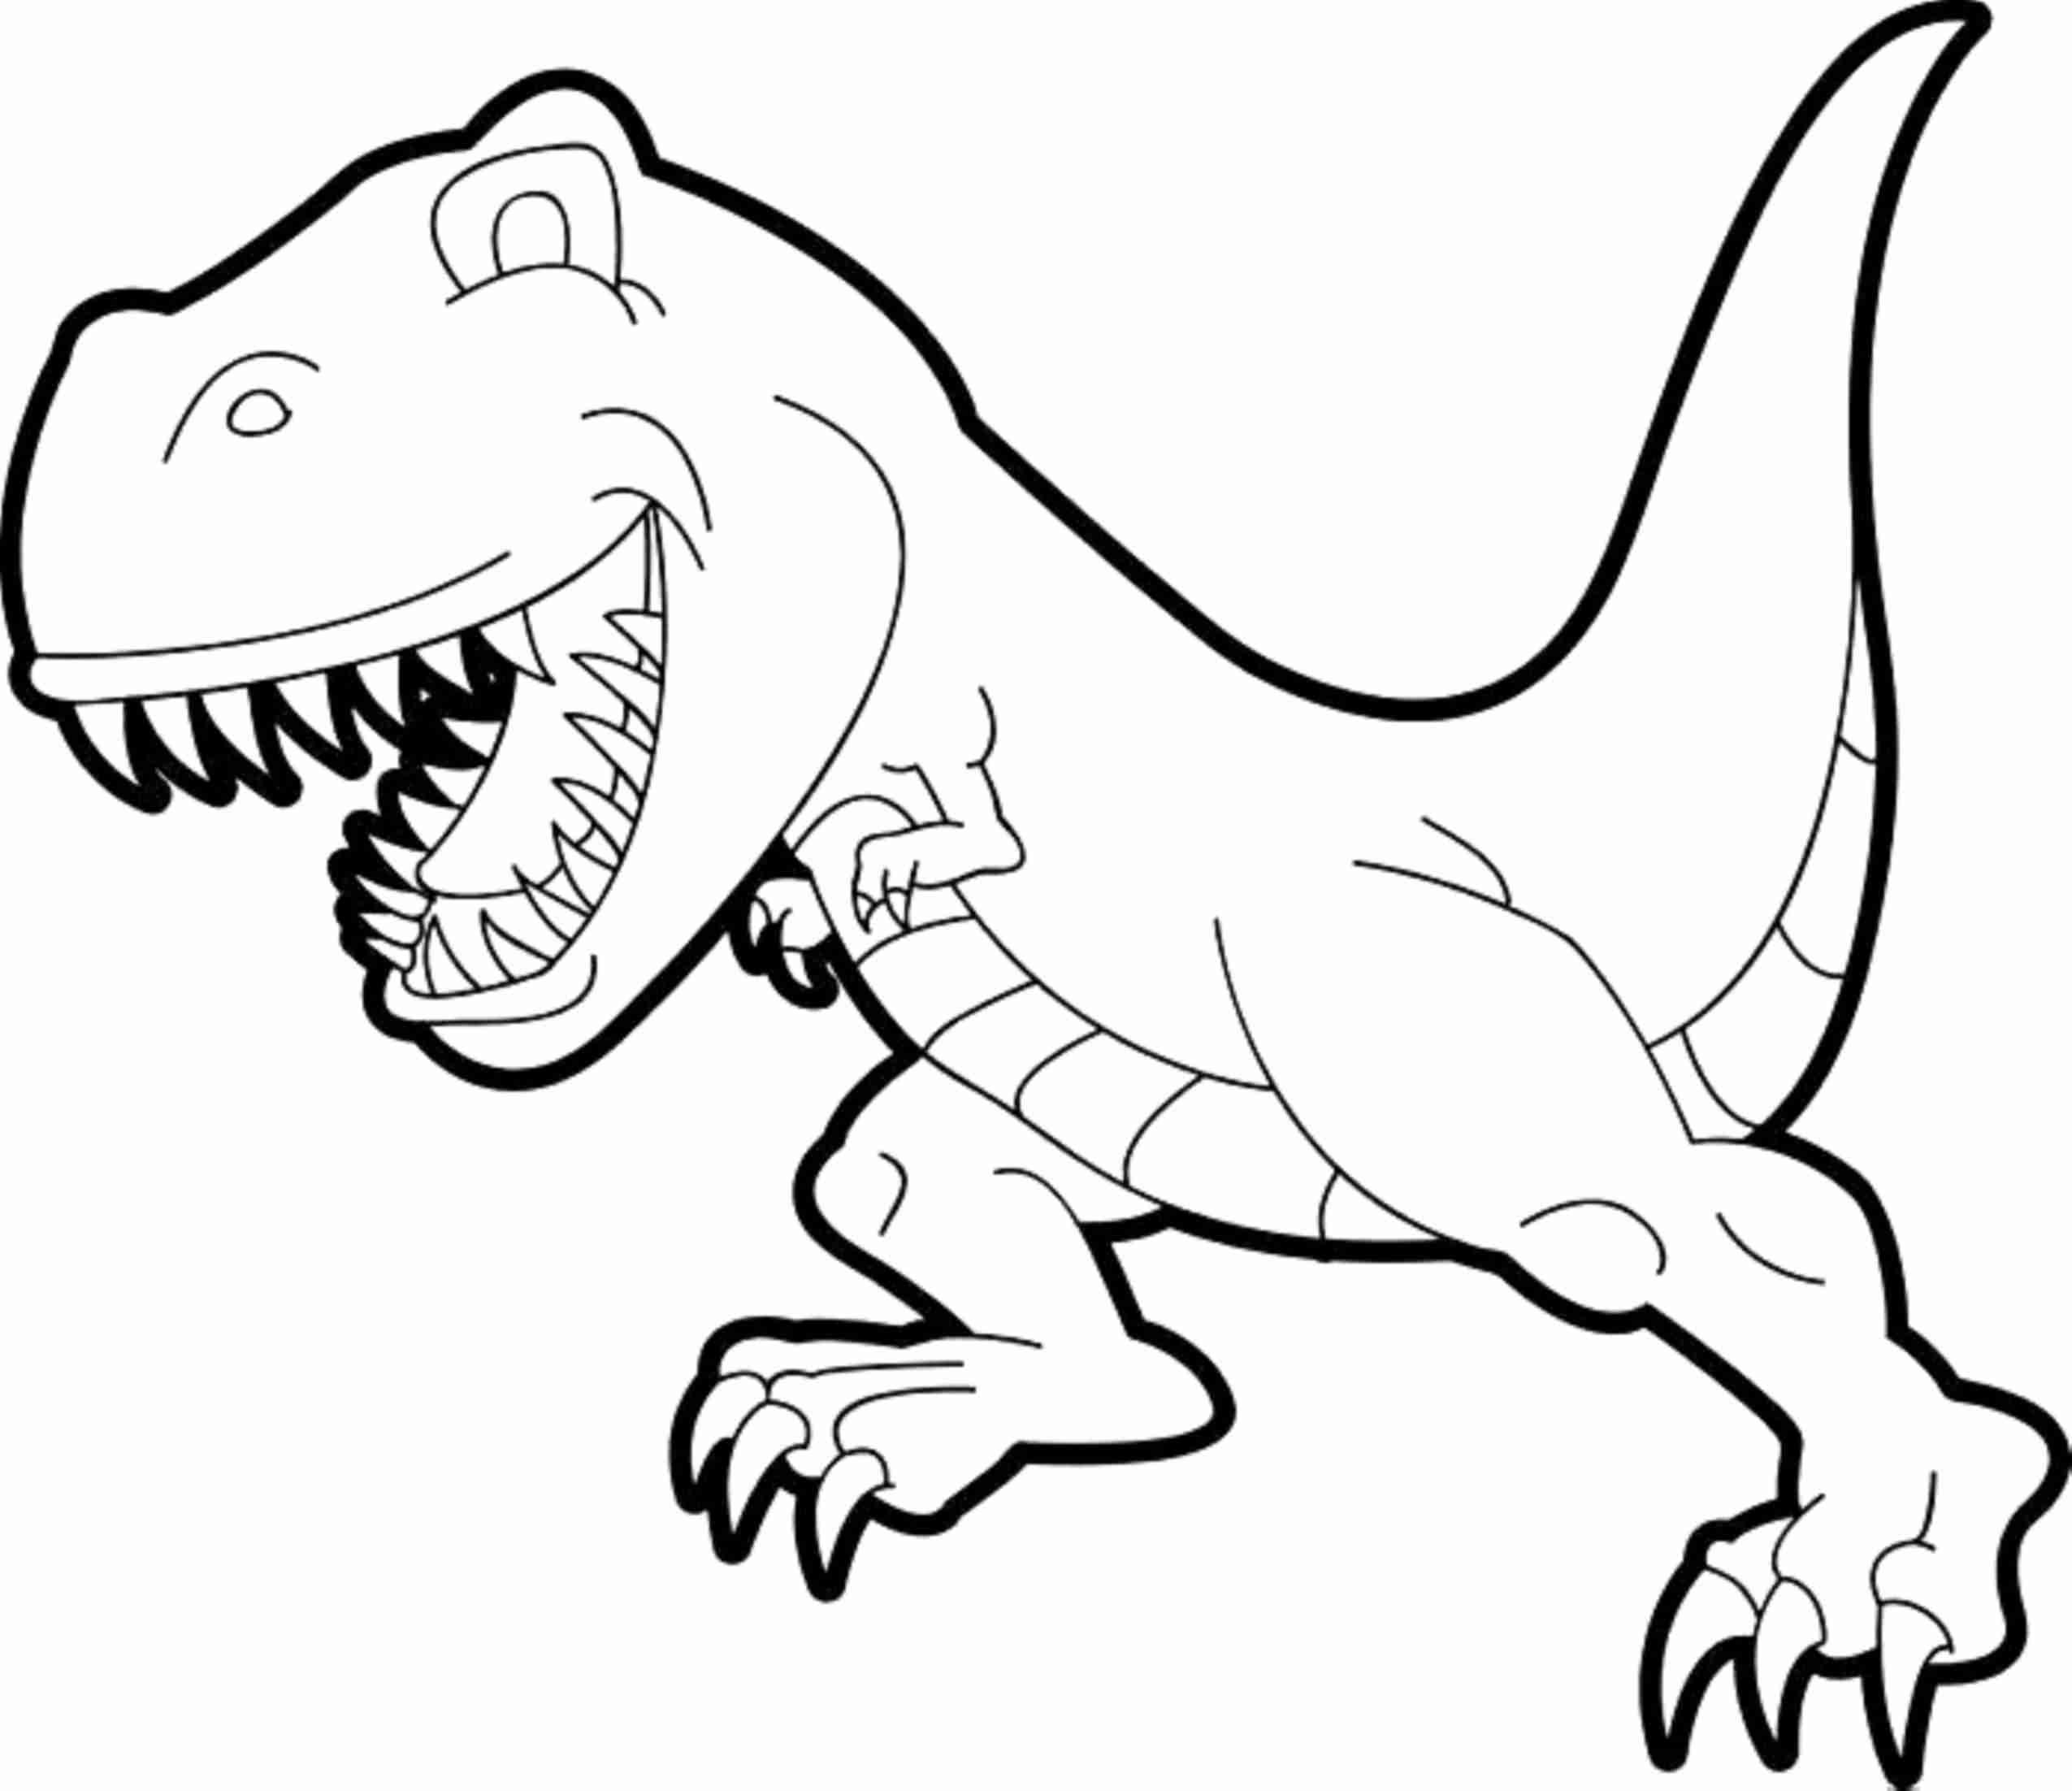 Simple T Rex Drawing Dinosaur Coloring Pages Trex Sketch Beautiful Gallery Of Dinosaur Clipart Coloring Page Triceratop Pencil and In Color Gallery